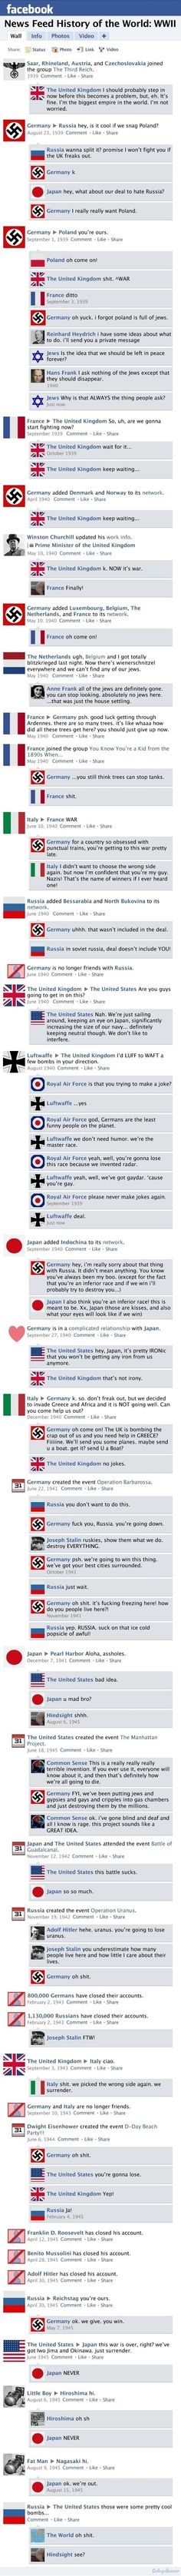 Facebook News Feed of WWII History